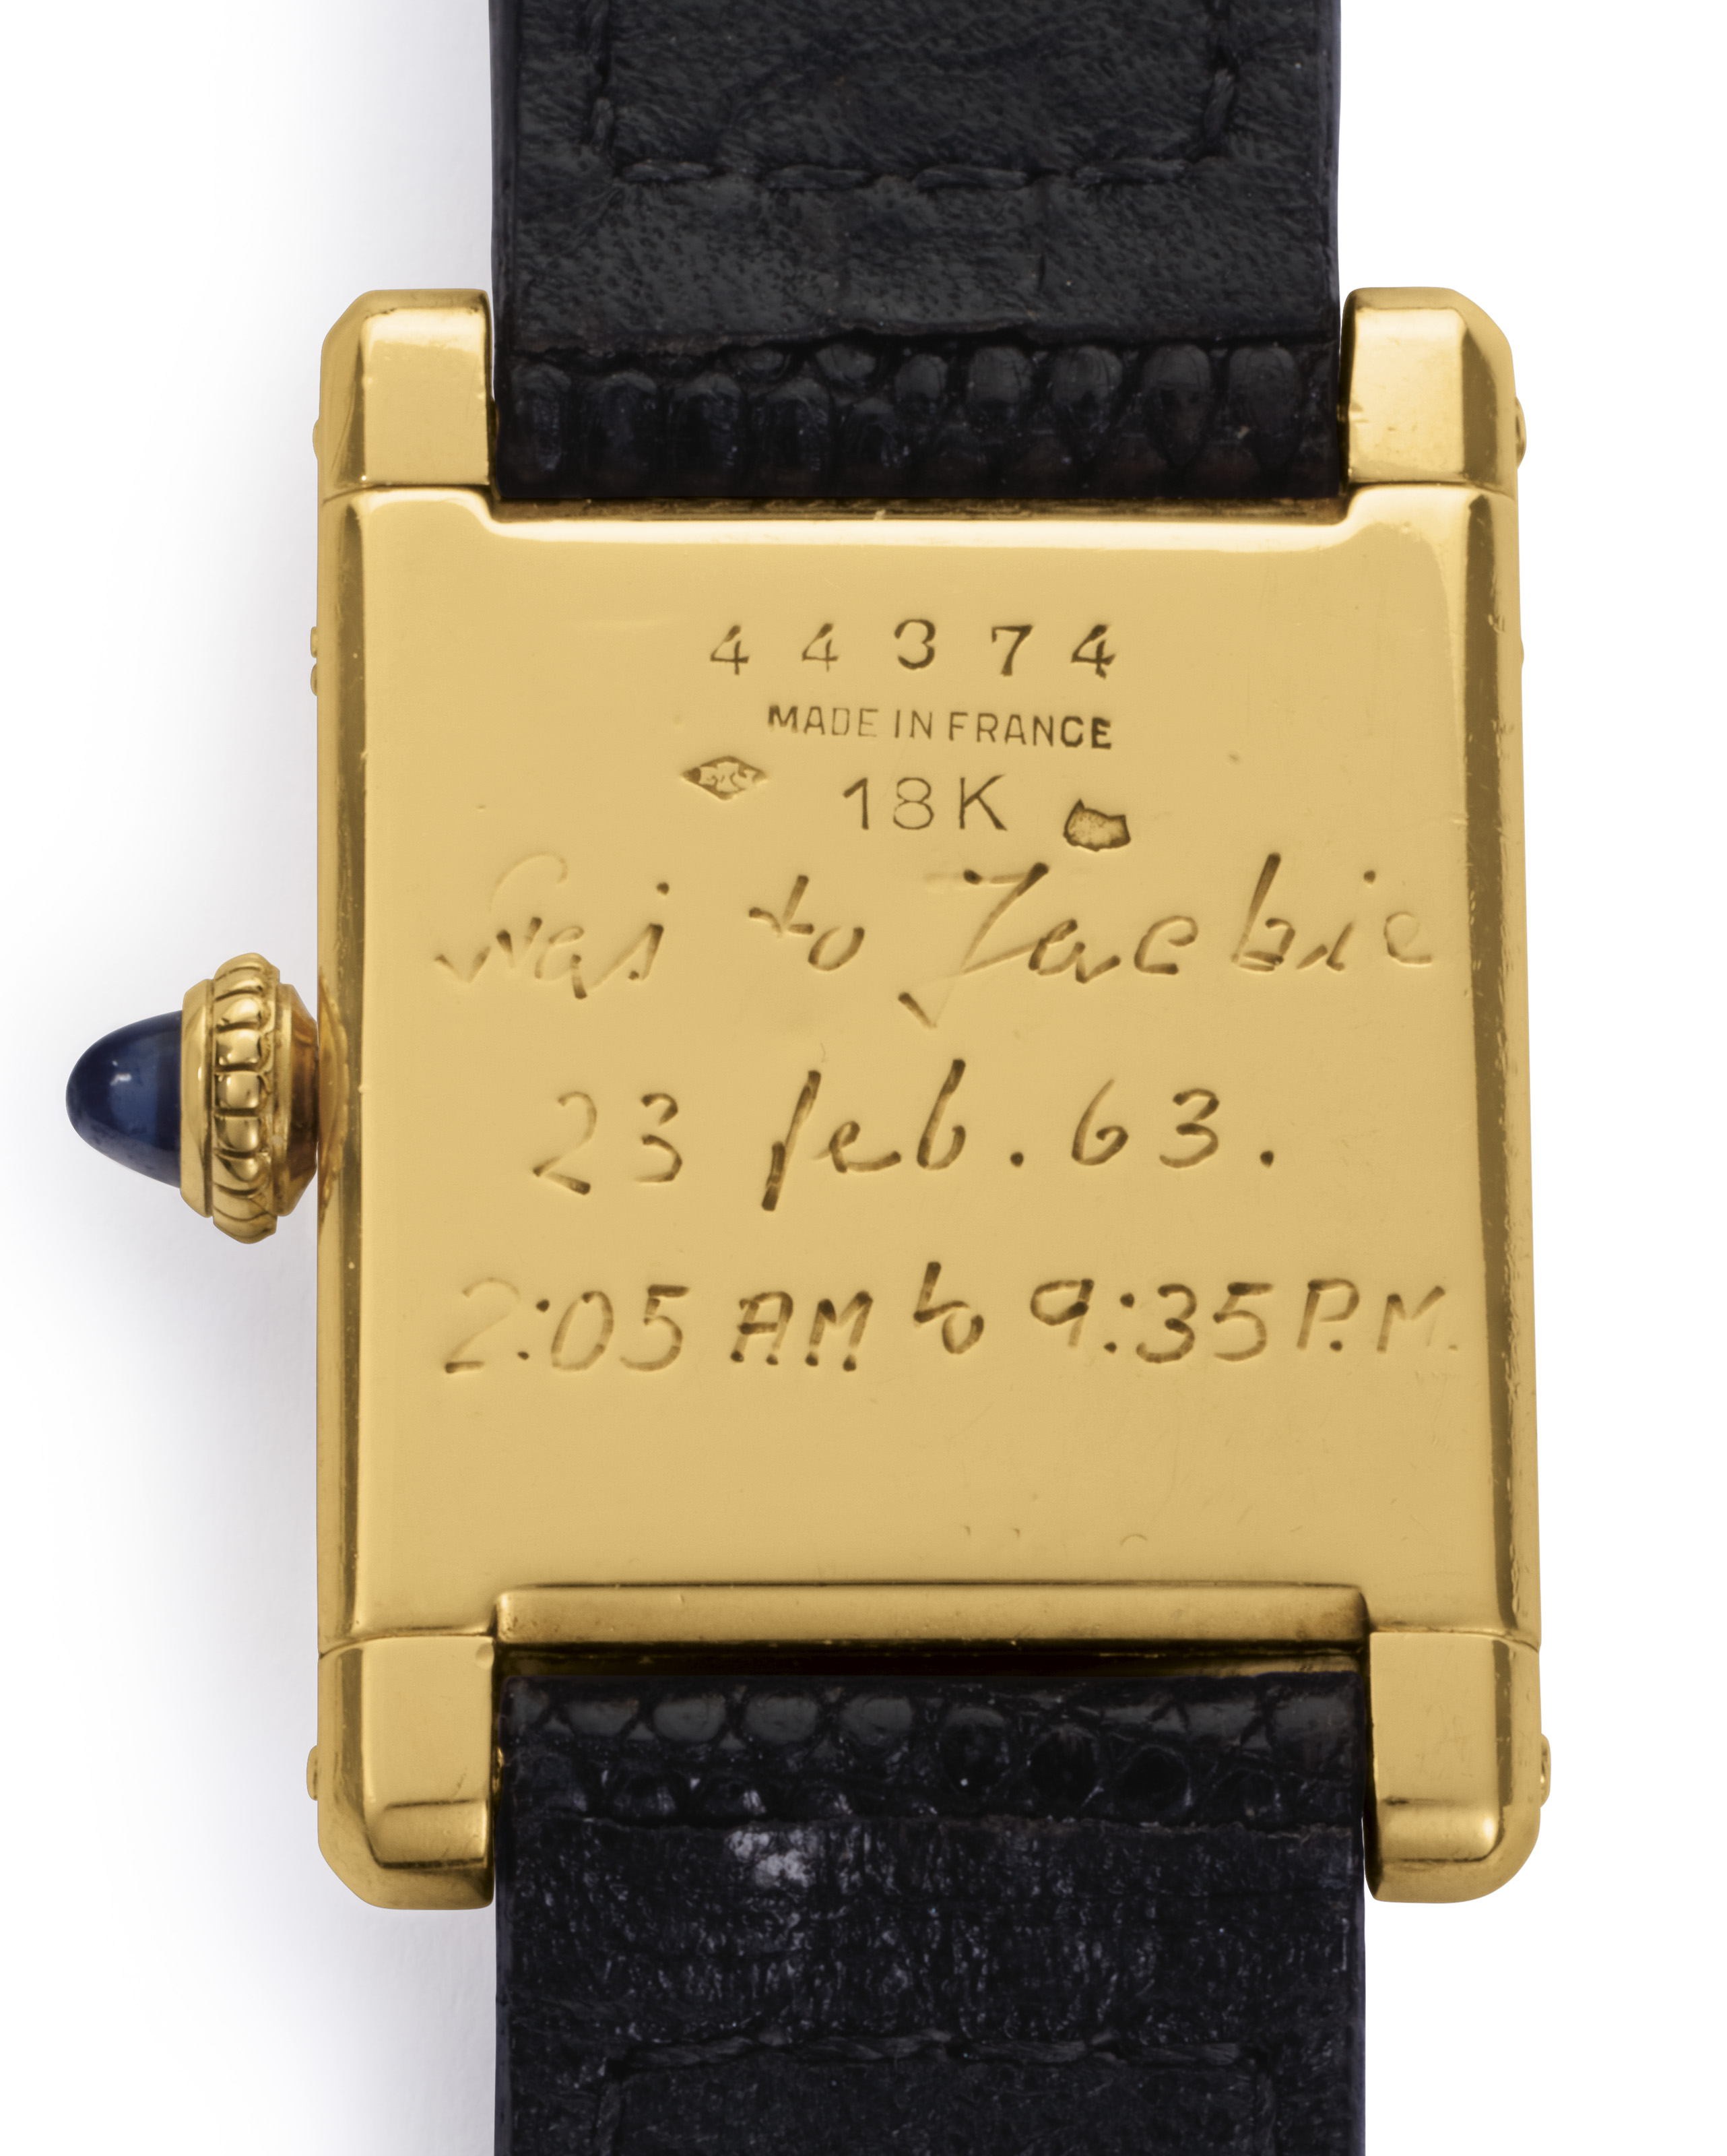 Cartier. A Fine and Historically Important 18k Gold Square-shaped Wristwatch, Belonging to Jacqueline Kennedy Onassis, and an Original Painting by Jacqueline Kennedy Onassis